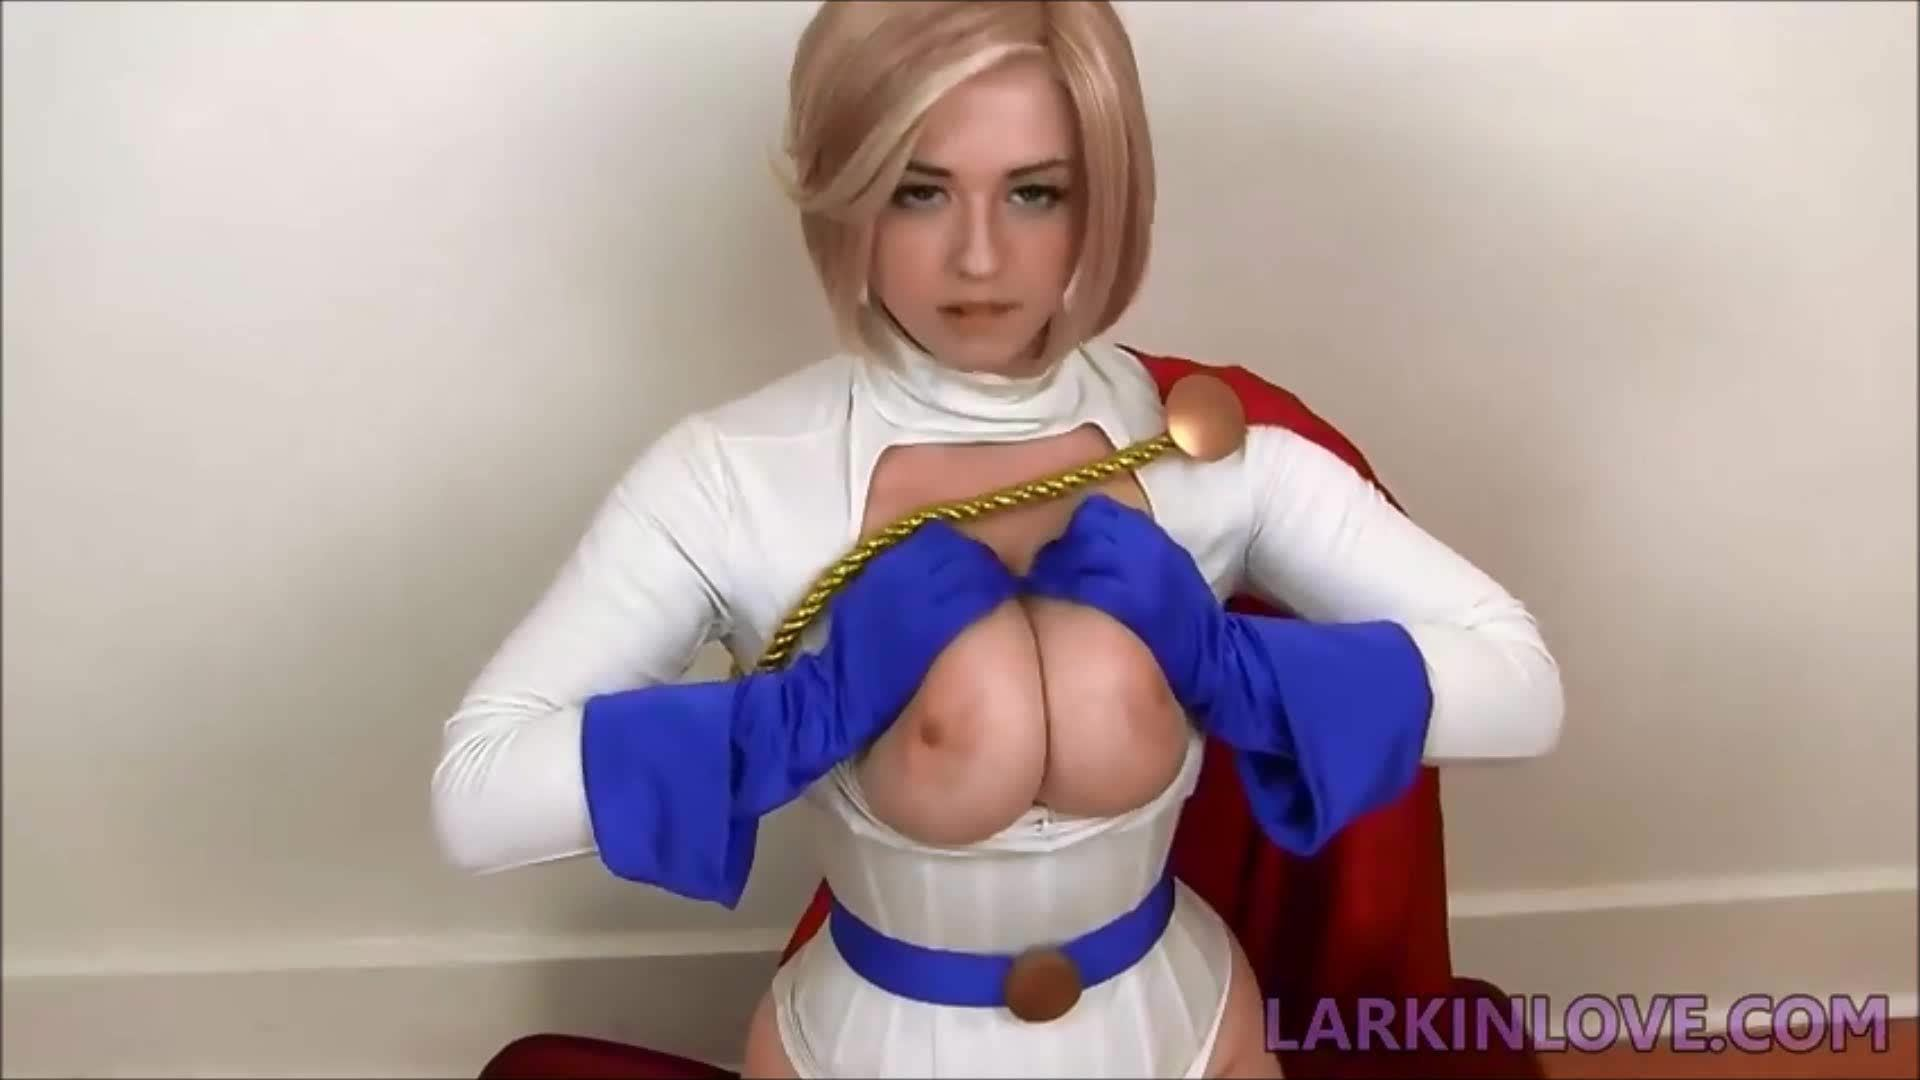 larkin love power girl